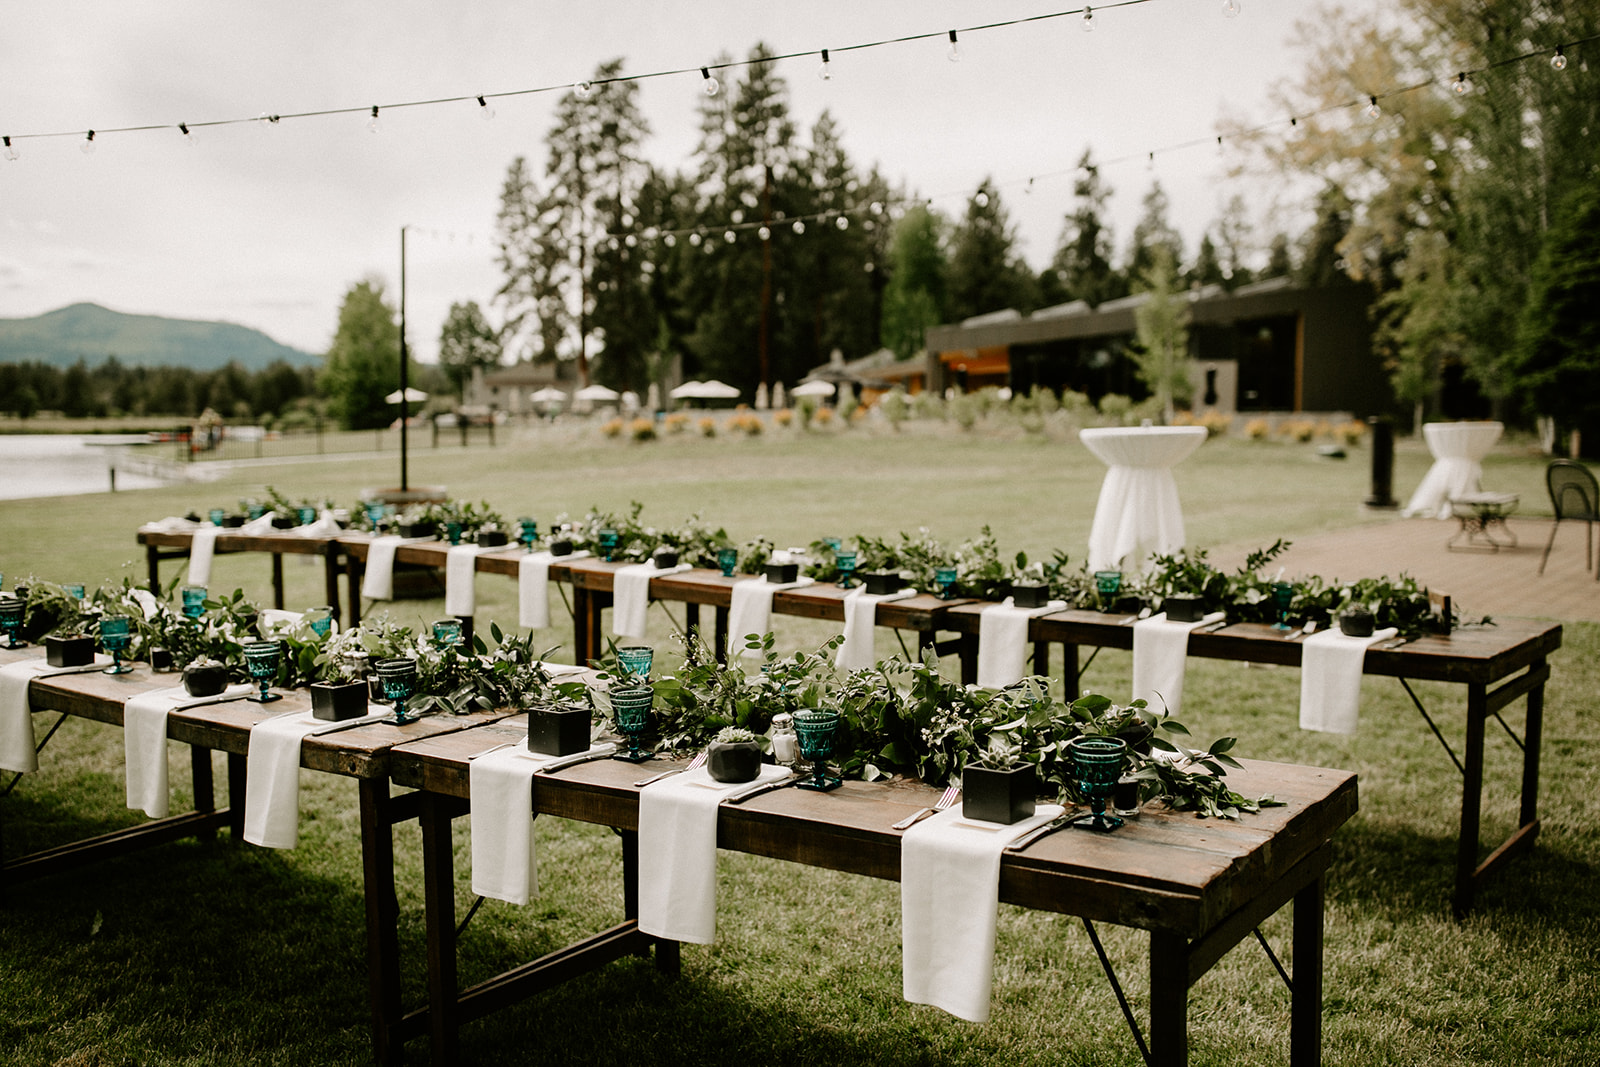 Black+Butte+Ranch++farm+table+wedding+event+rentals+Bend+Oregon+Curated+Dawn+Charles+Photography.jpg